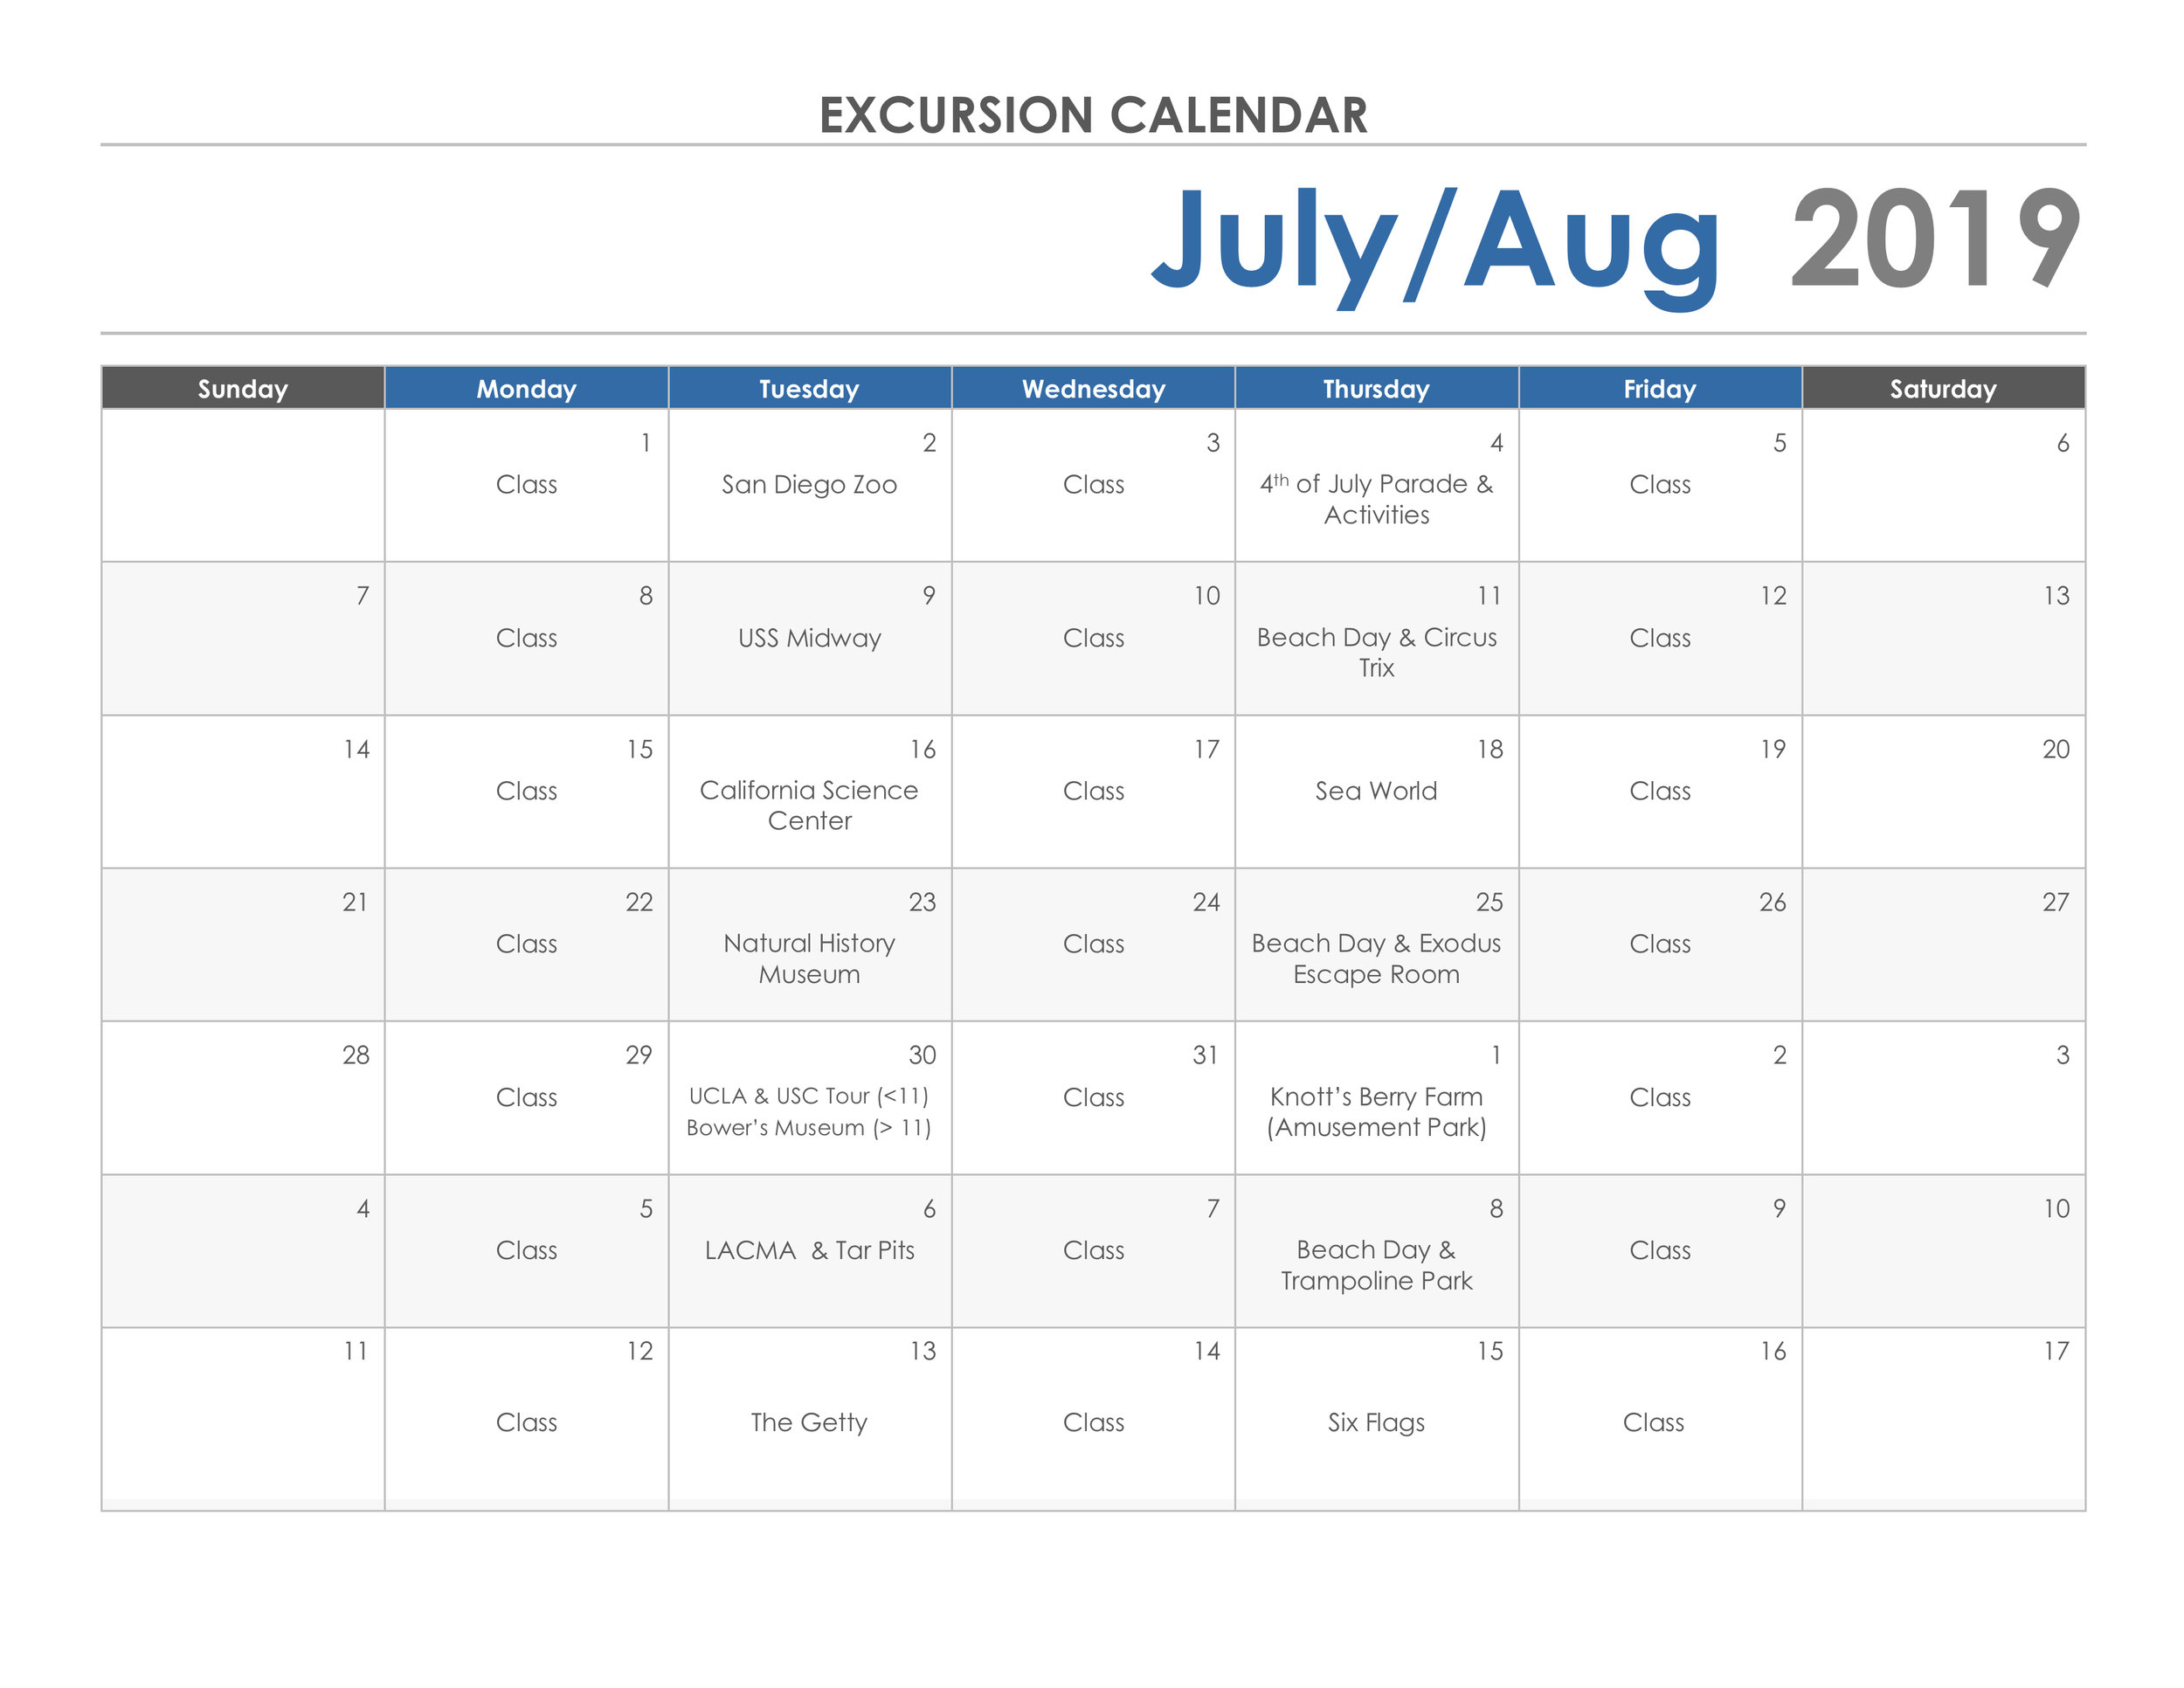 For a downloadable file of the calendar please click here